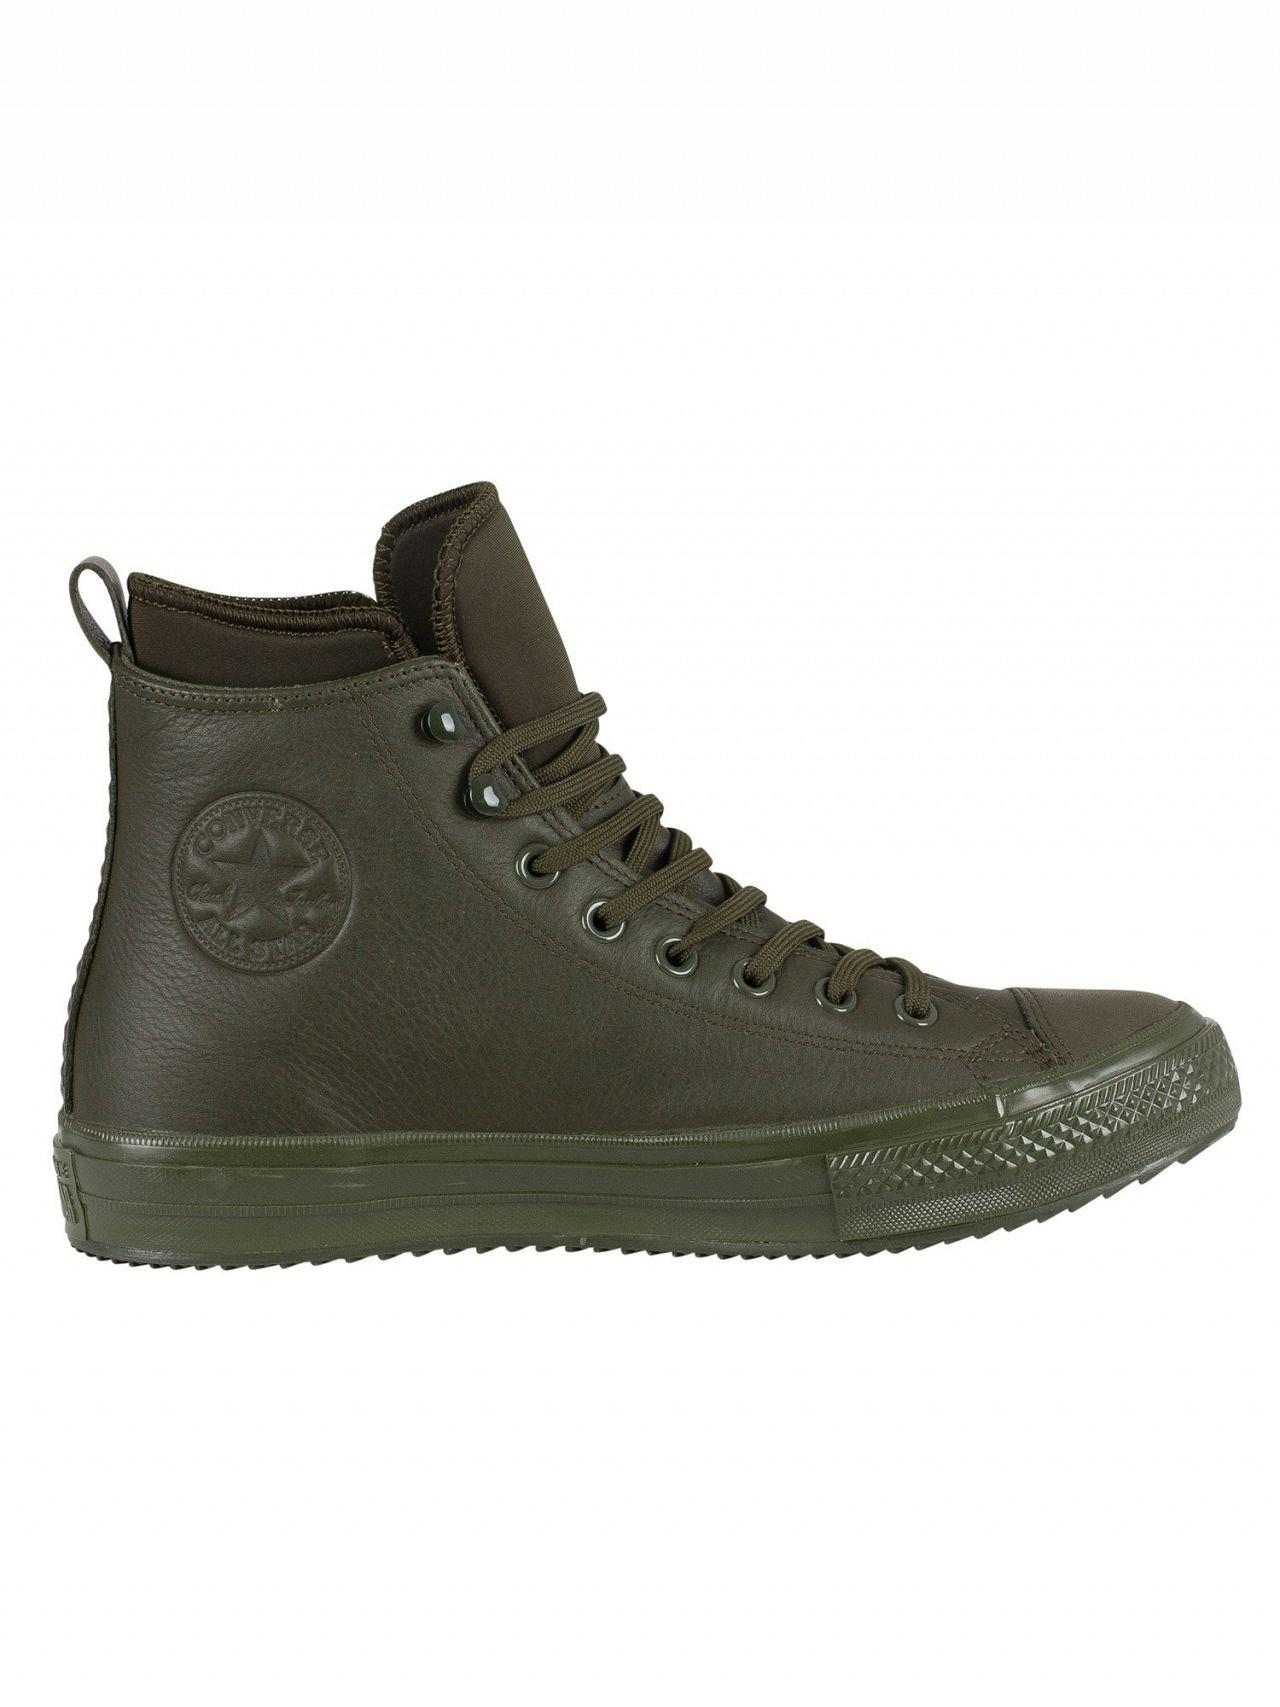 Converse Utility Green Ct All Star Hi Wp Leather Boots for